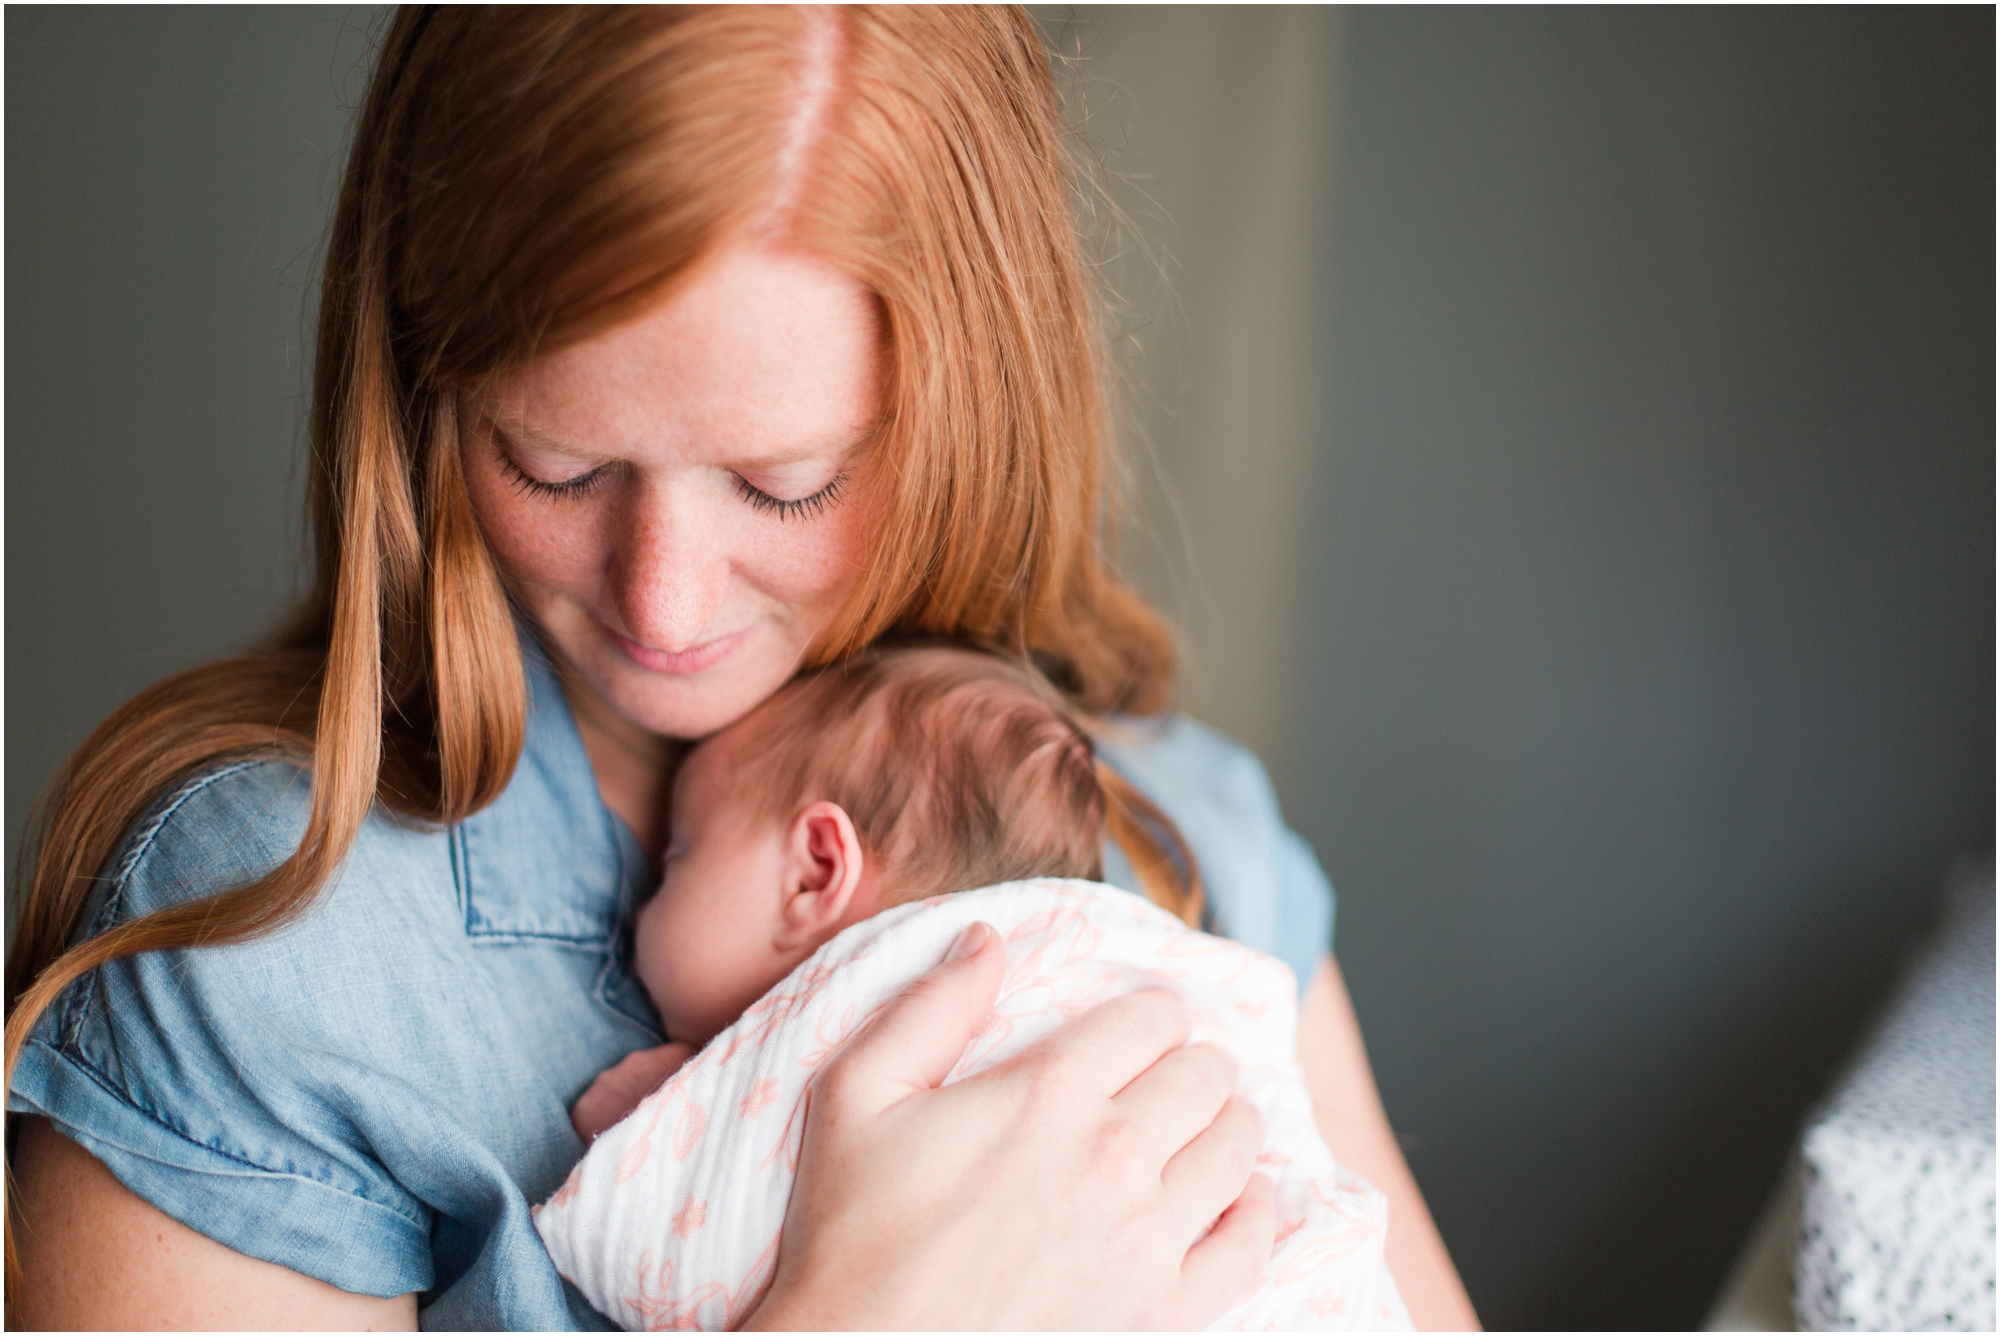 Seattle lifestyle newborn photos by Briana Calderon Photography based in the Greater Seattle & Tacoma, WA_0727.jpg